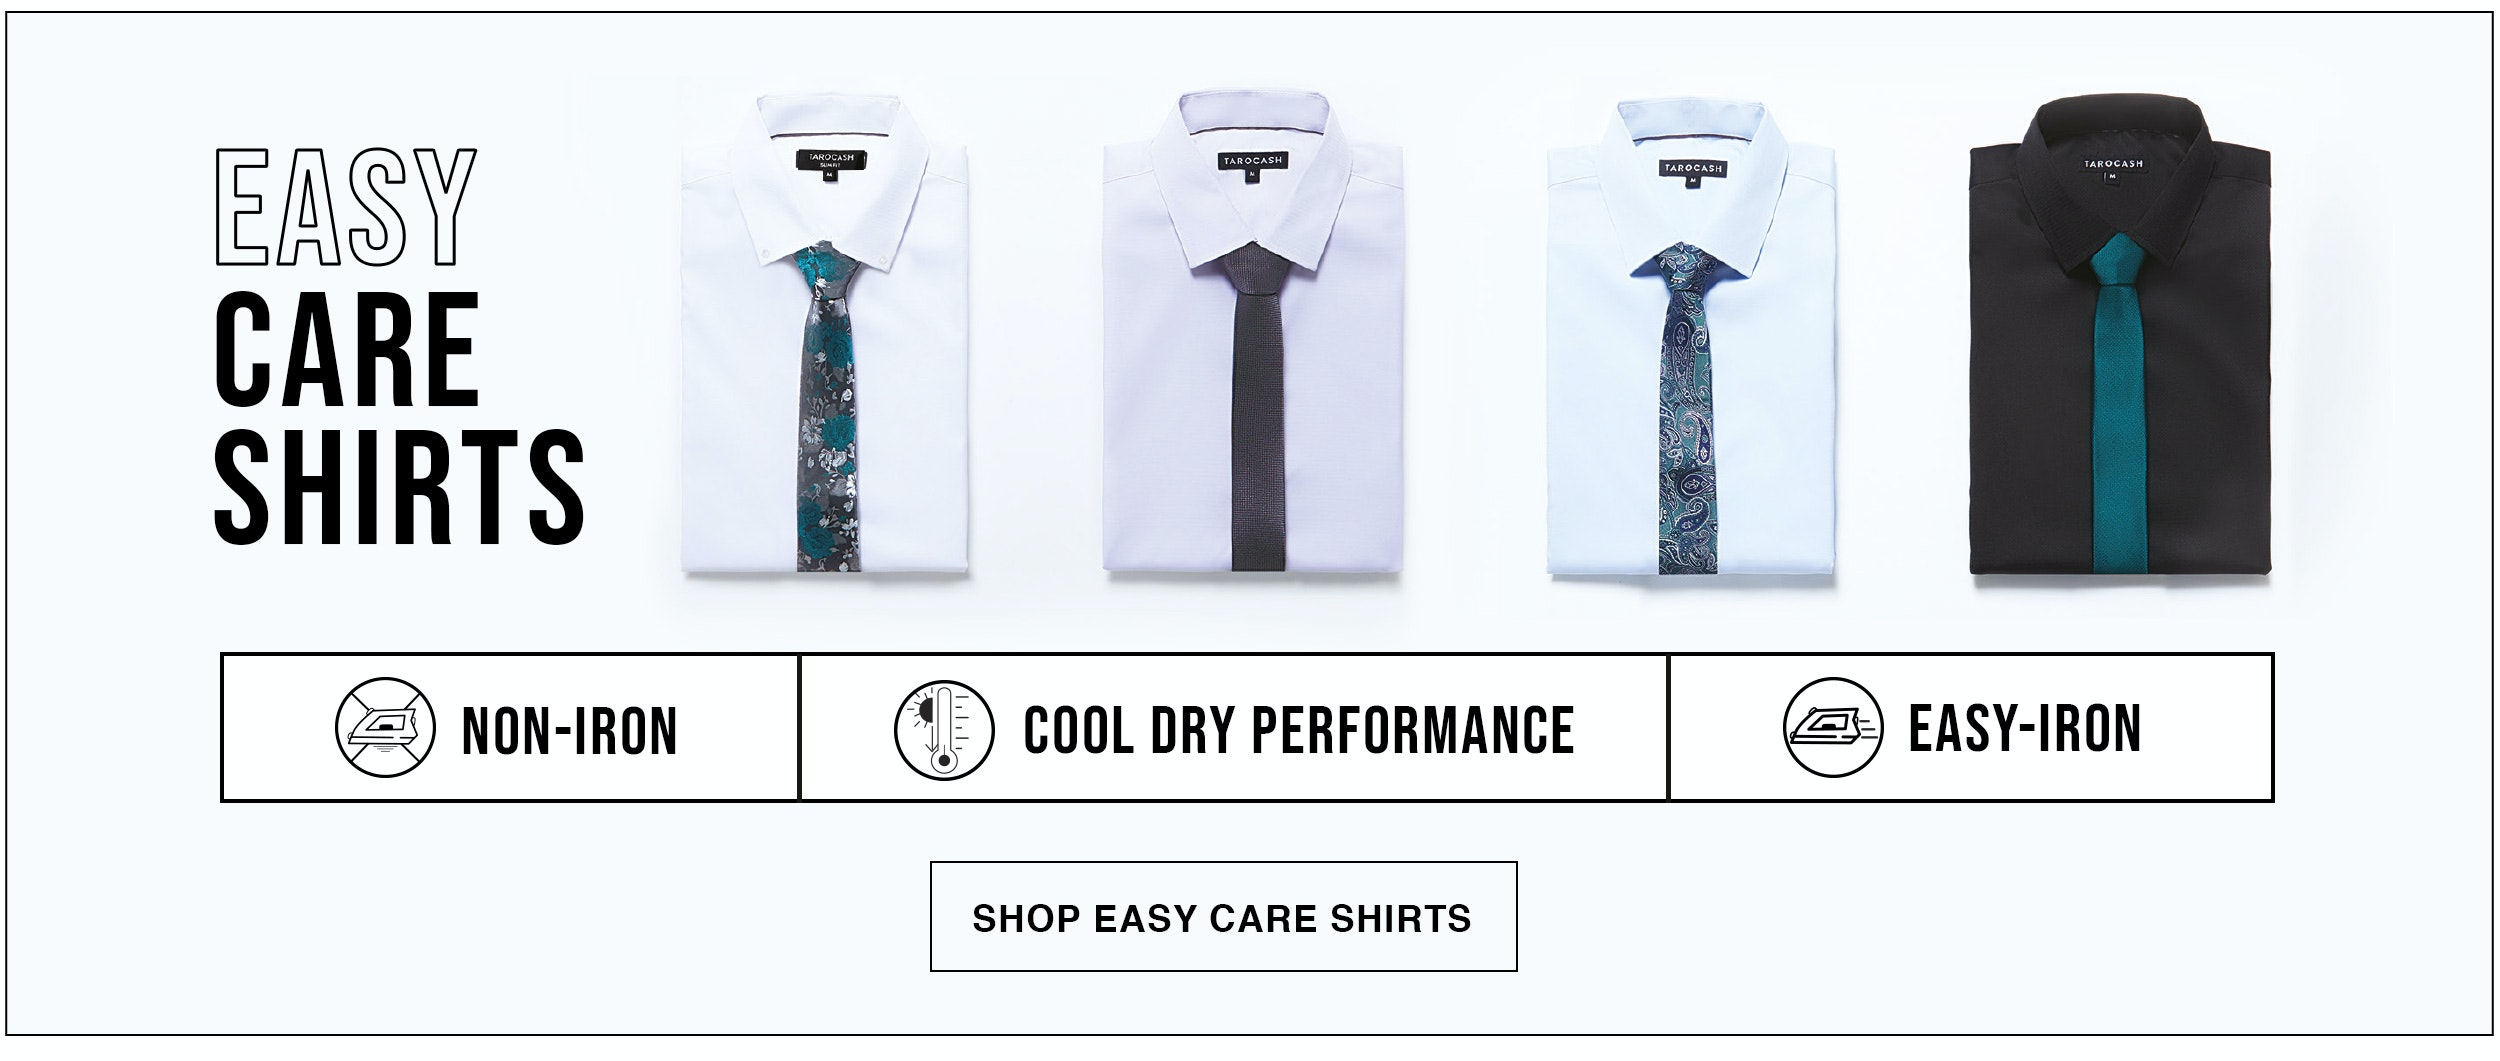 Shop Easy Care Shirts